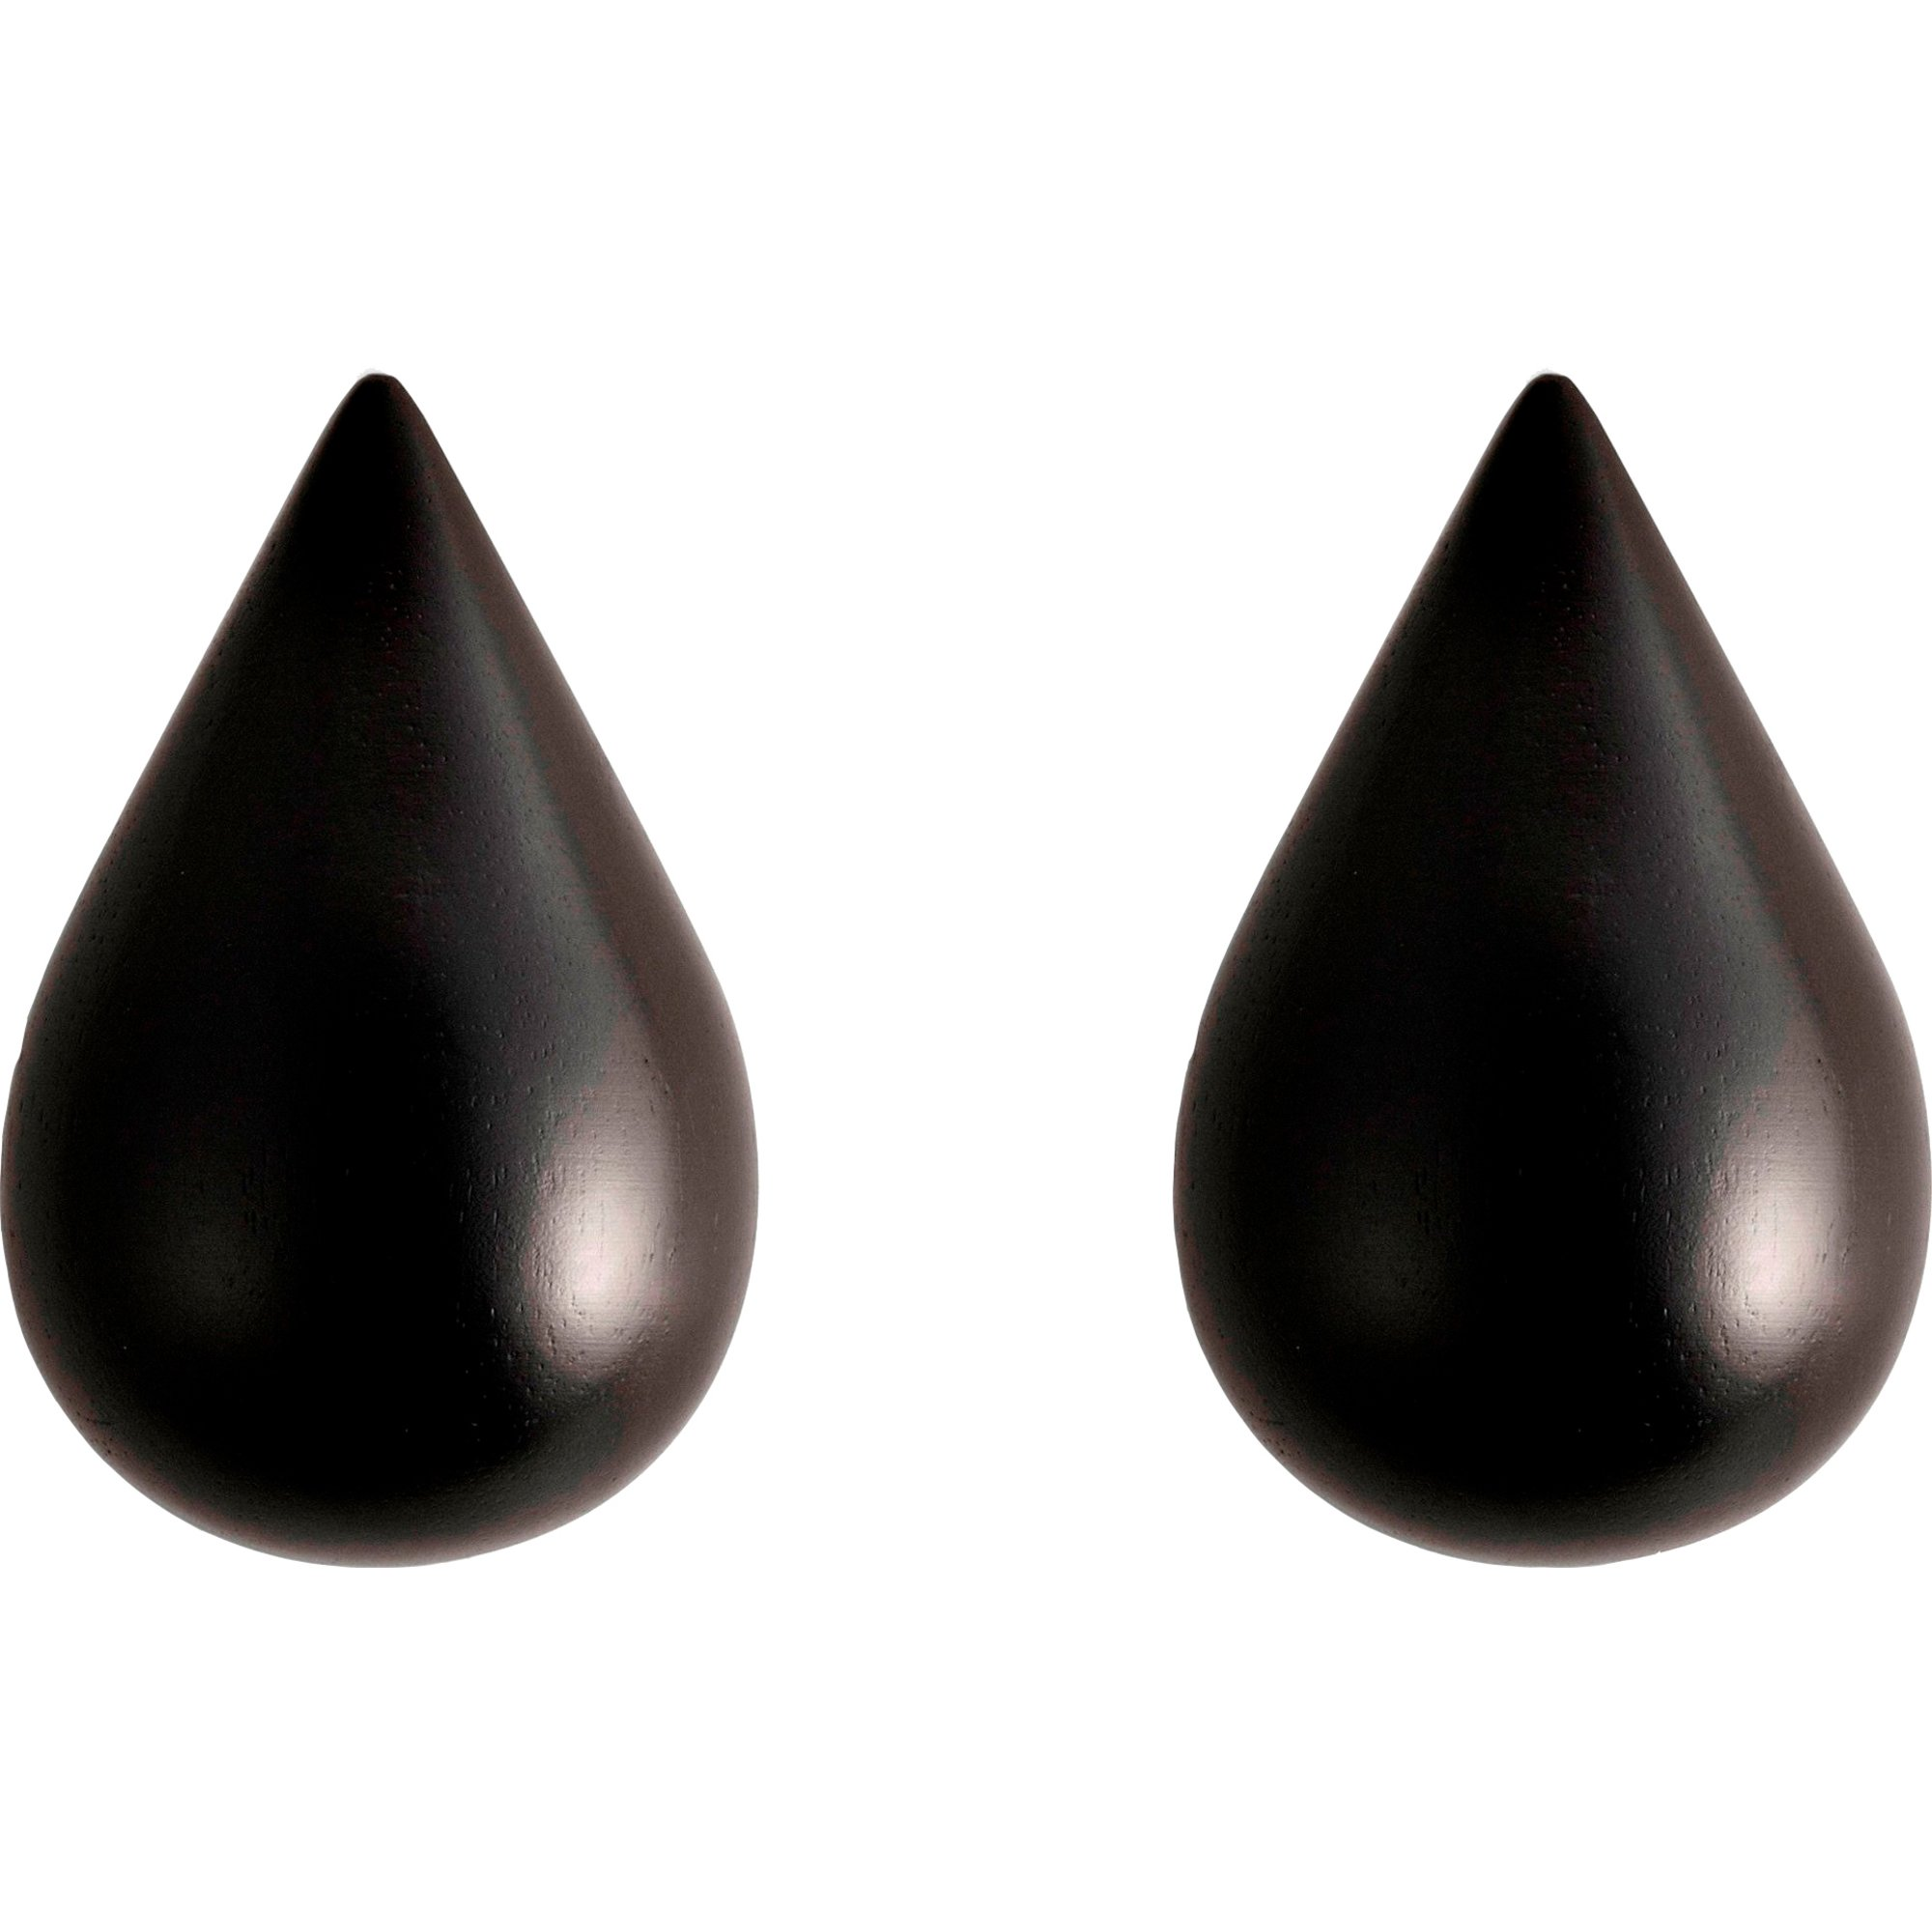 Normann Copenhagen Dropit Hooks Small – 2 pcs Blac